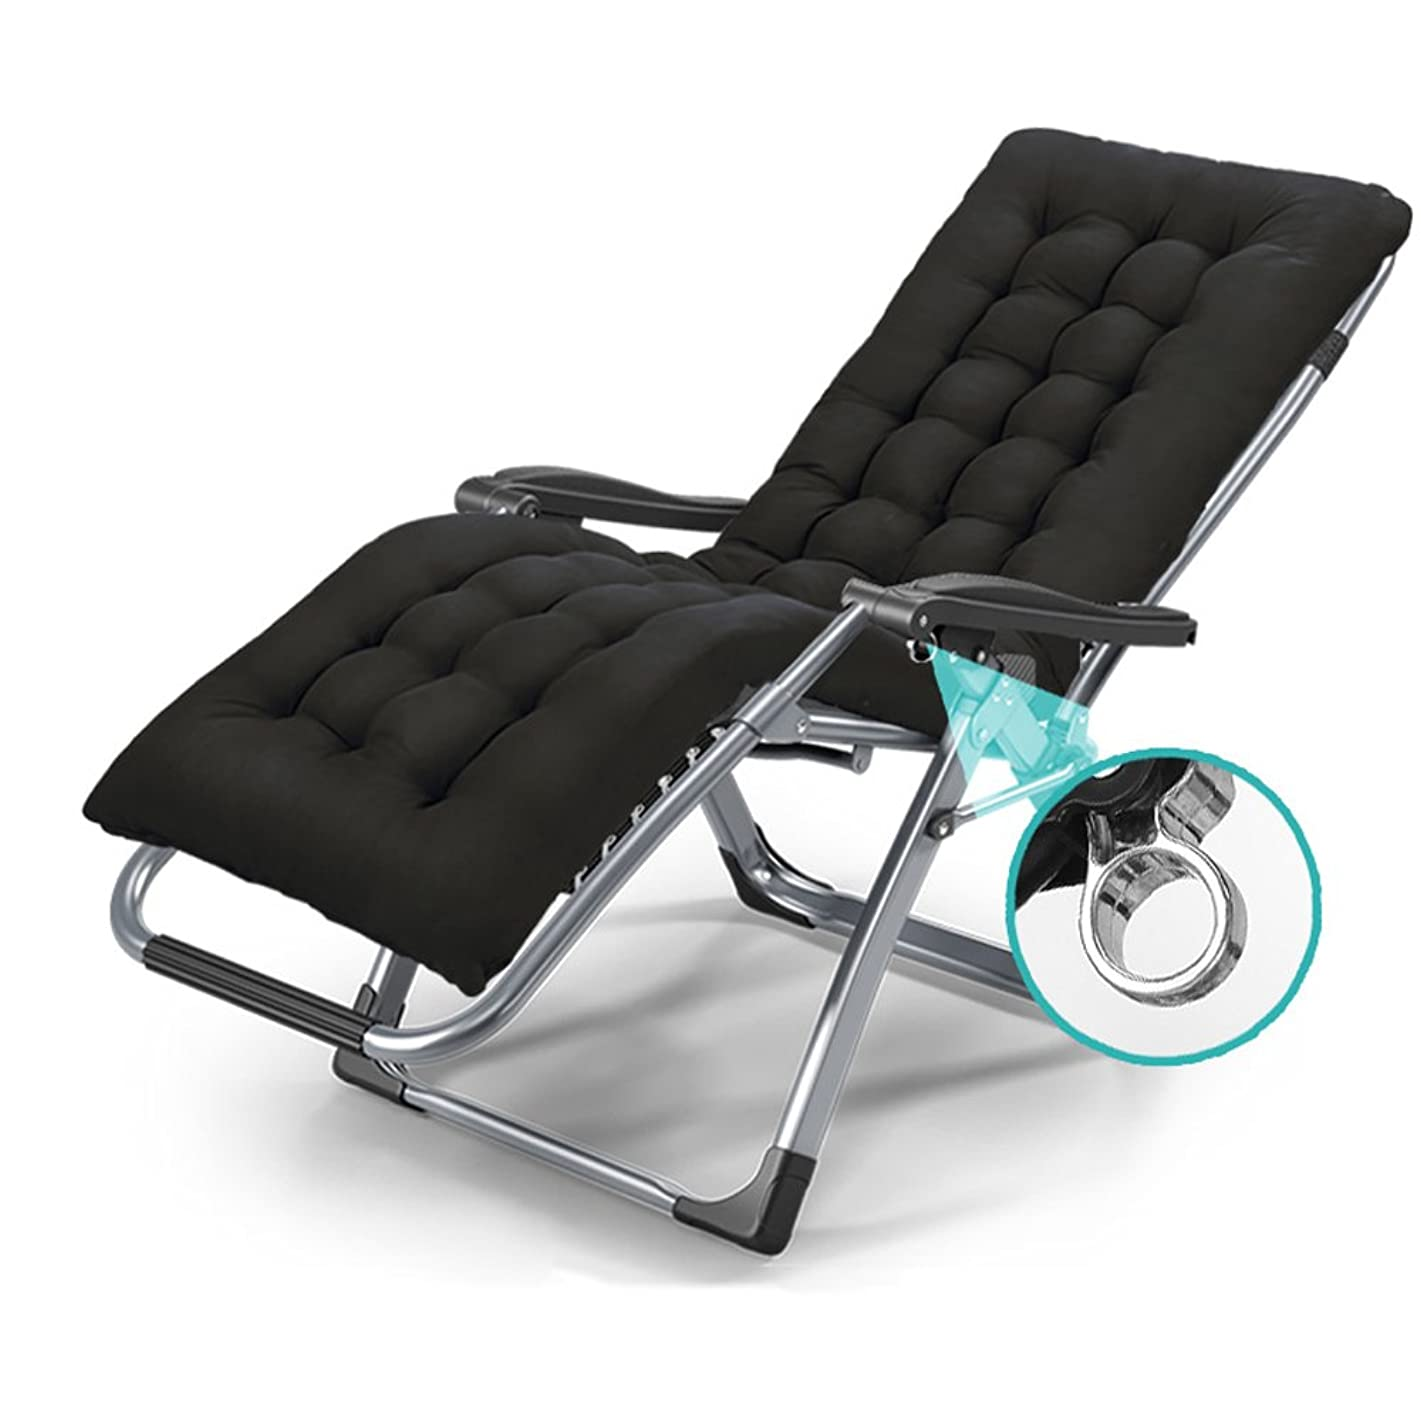 YAXIAO-Folding chair Folding Lounge Chair Personal Camping Bed Lounge Chair Maternity Chair Home Siesta Bed Folding Chair Office Angle Adjustable Garden Balcony Camping Chair (Color : A)